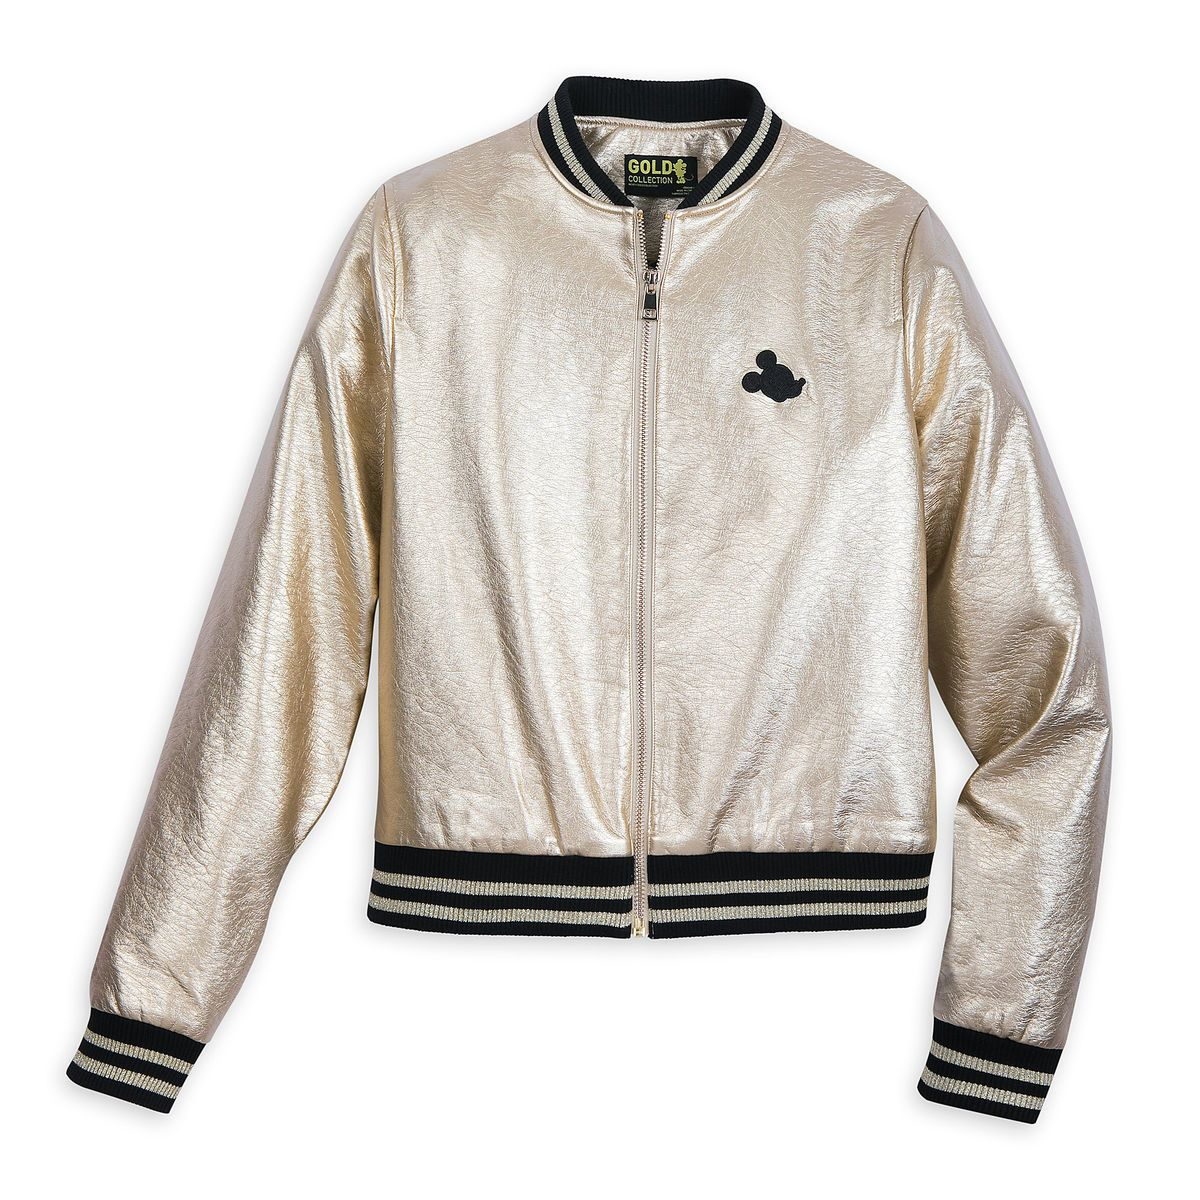 791ff0187da0 Mickey The True Original Varsity Jacket for Women - Gold Collection ...